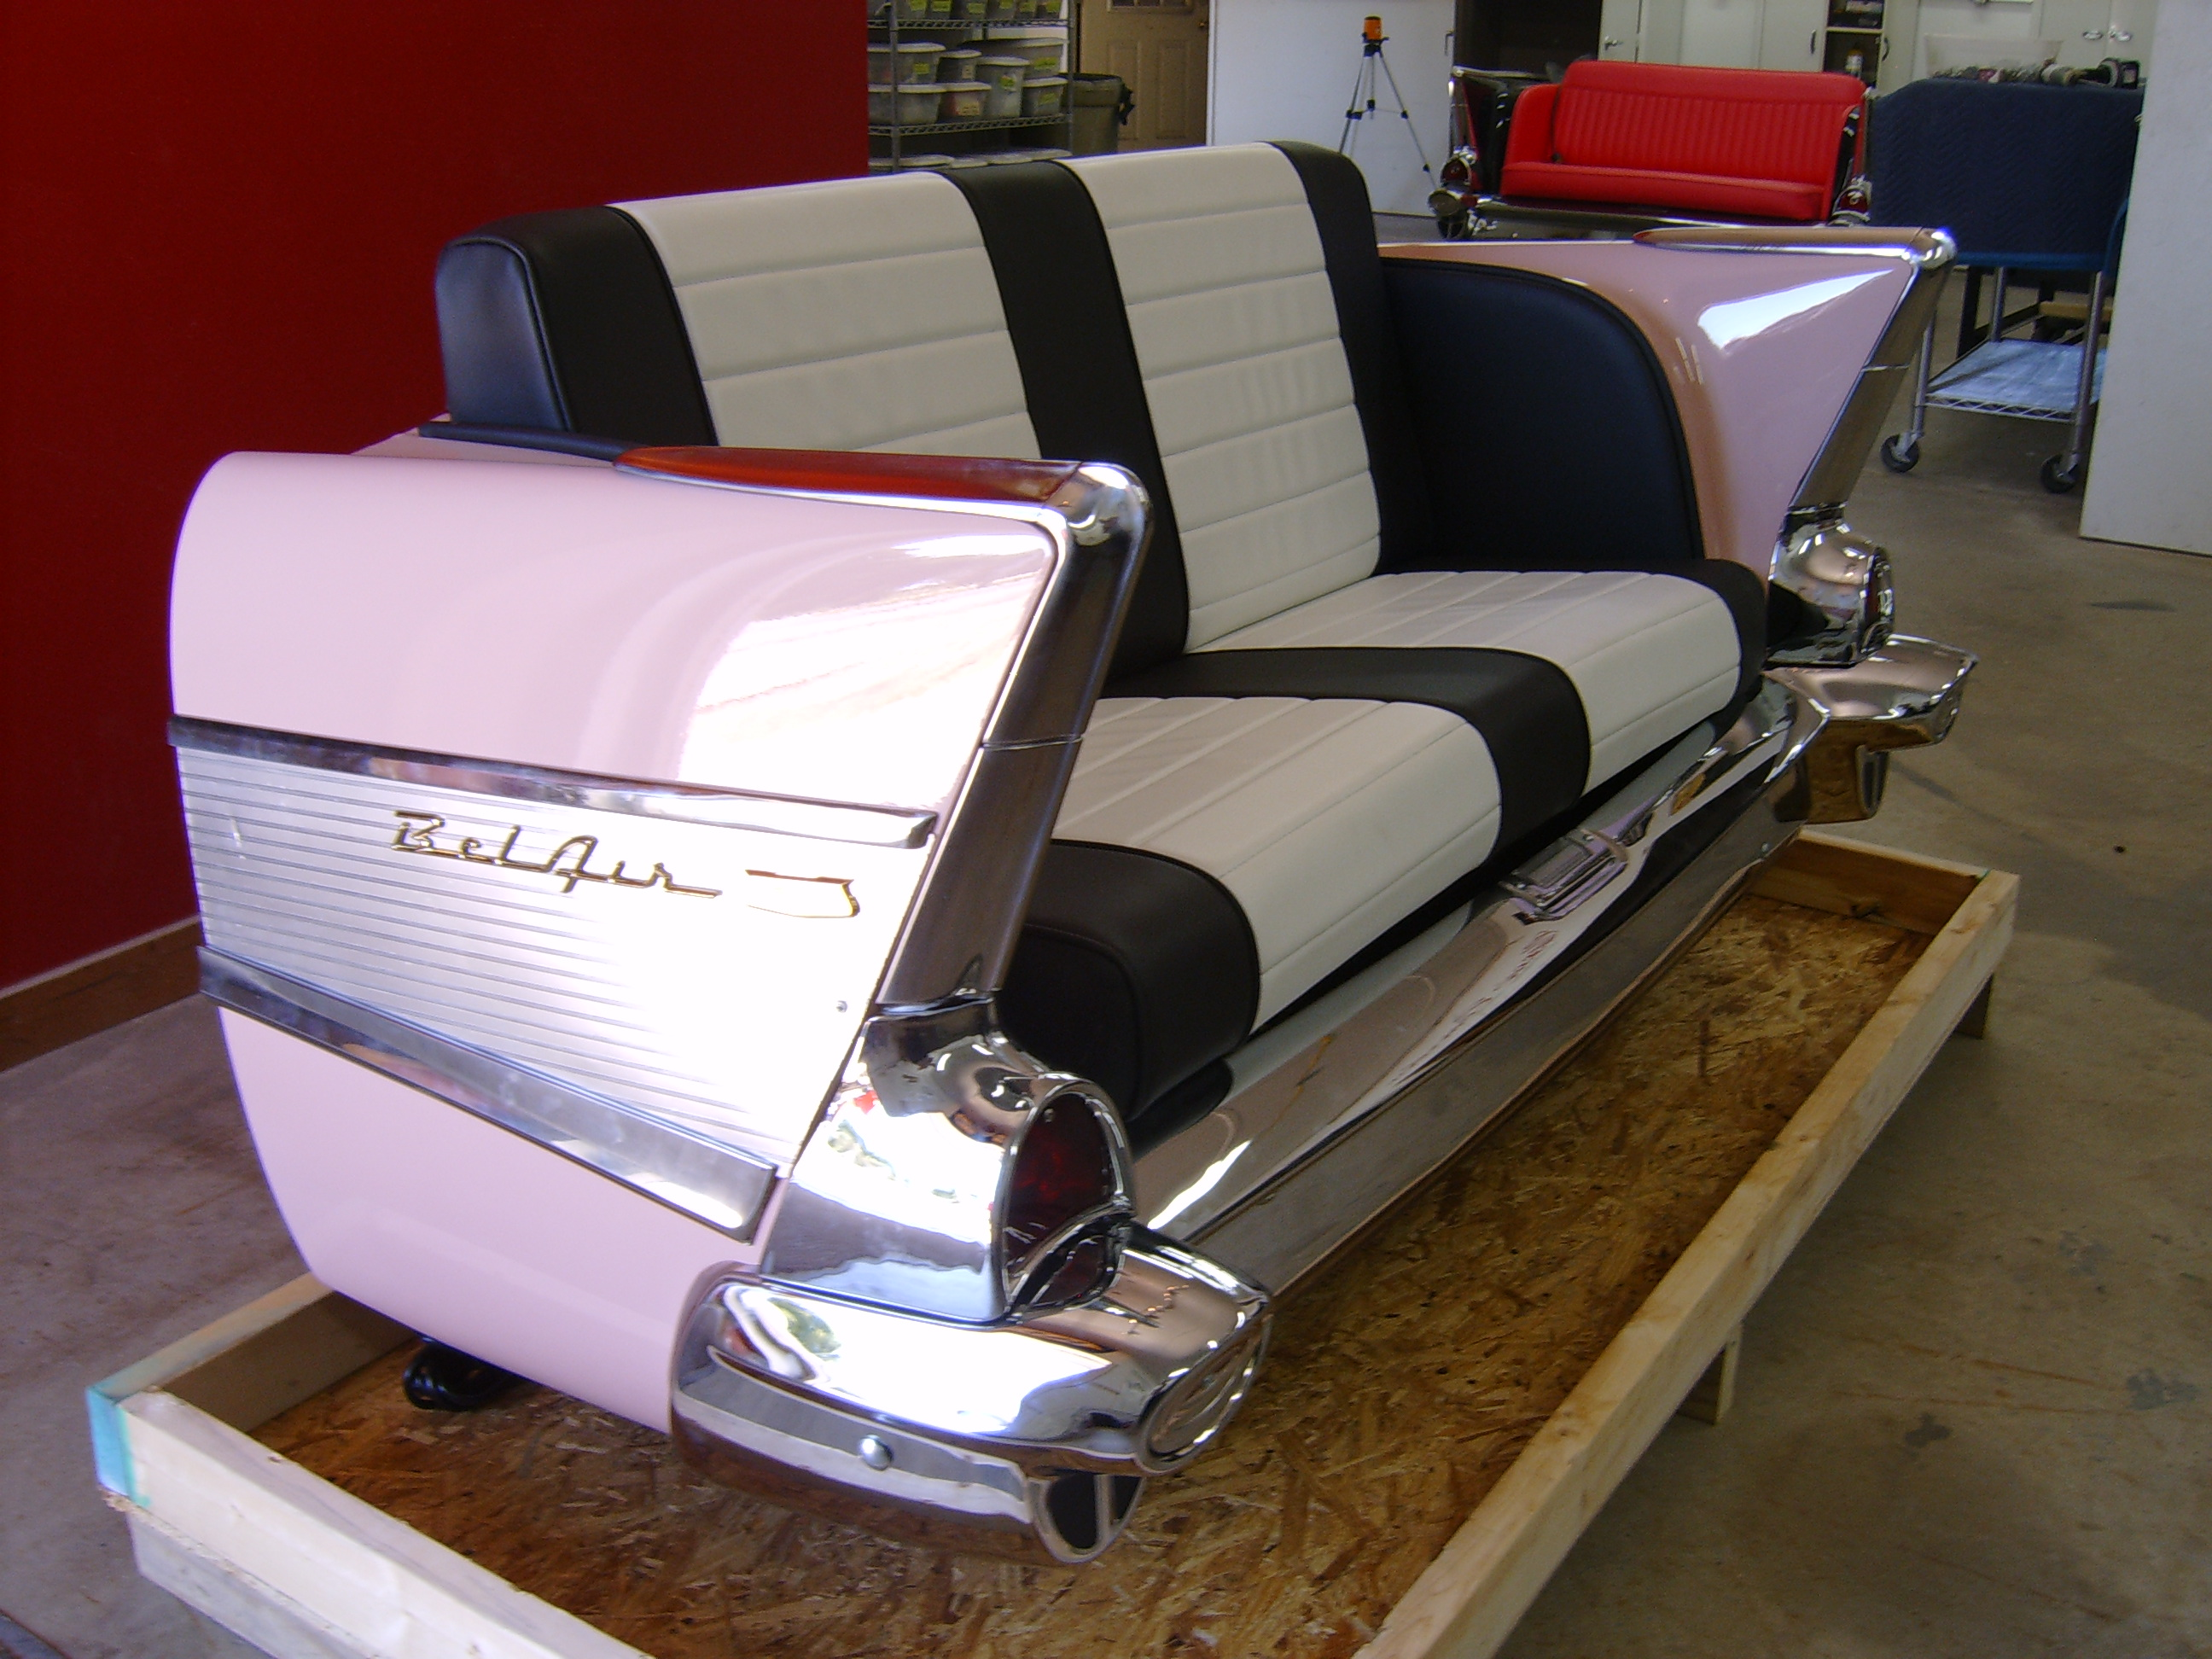 New retro cars restored classic car furniture and decor for Classic beds for sale